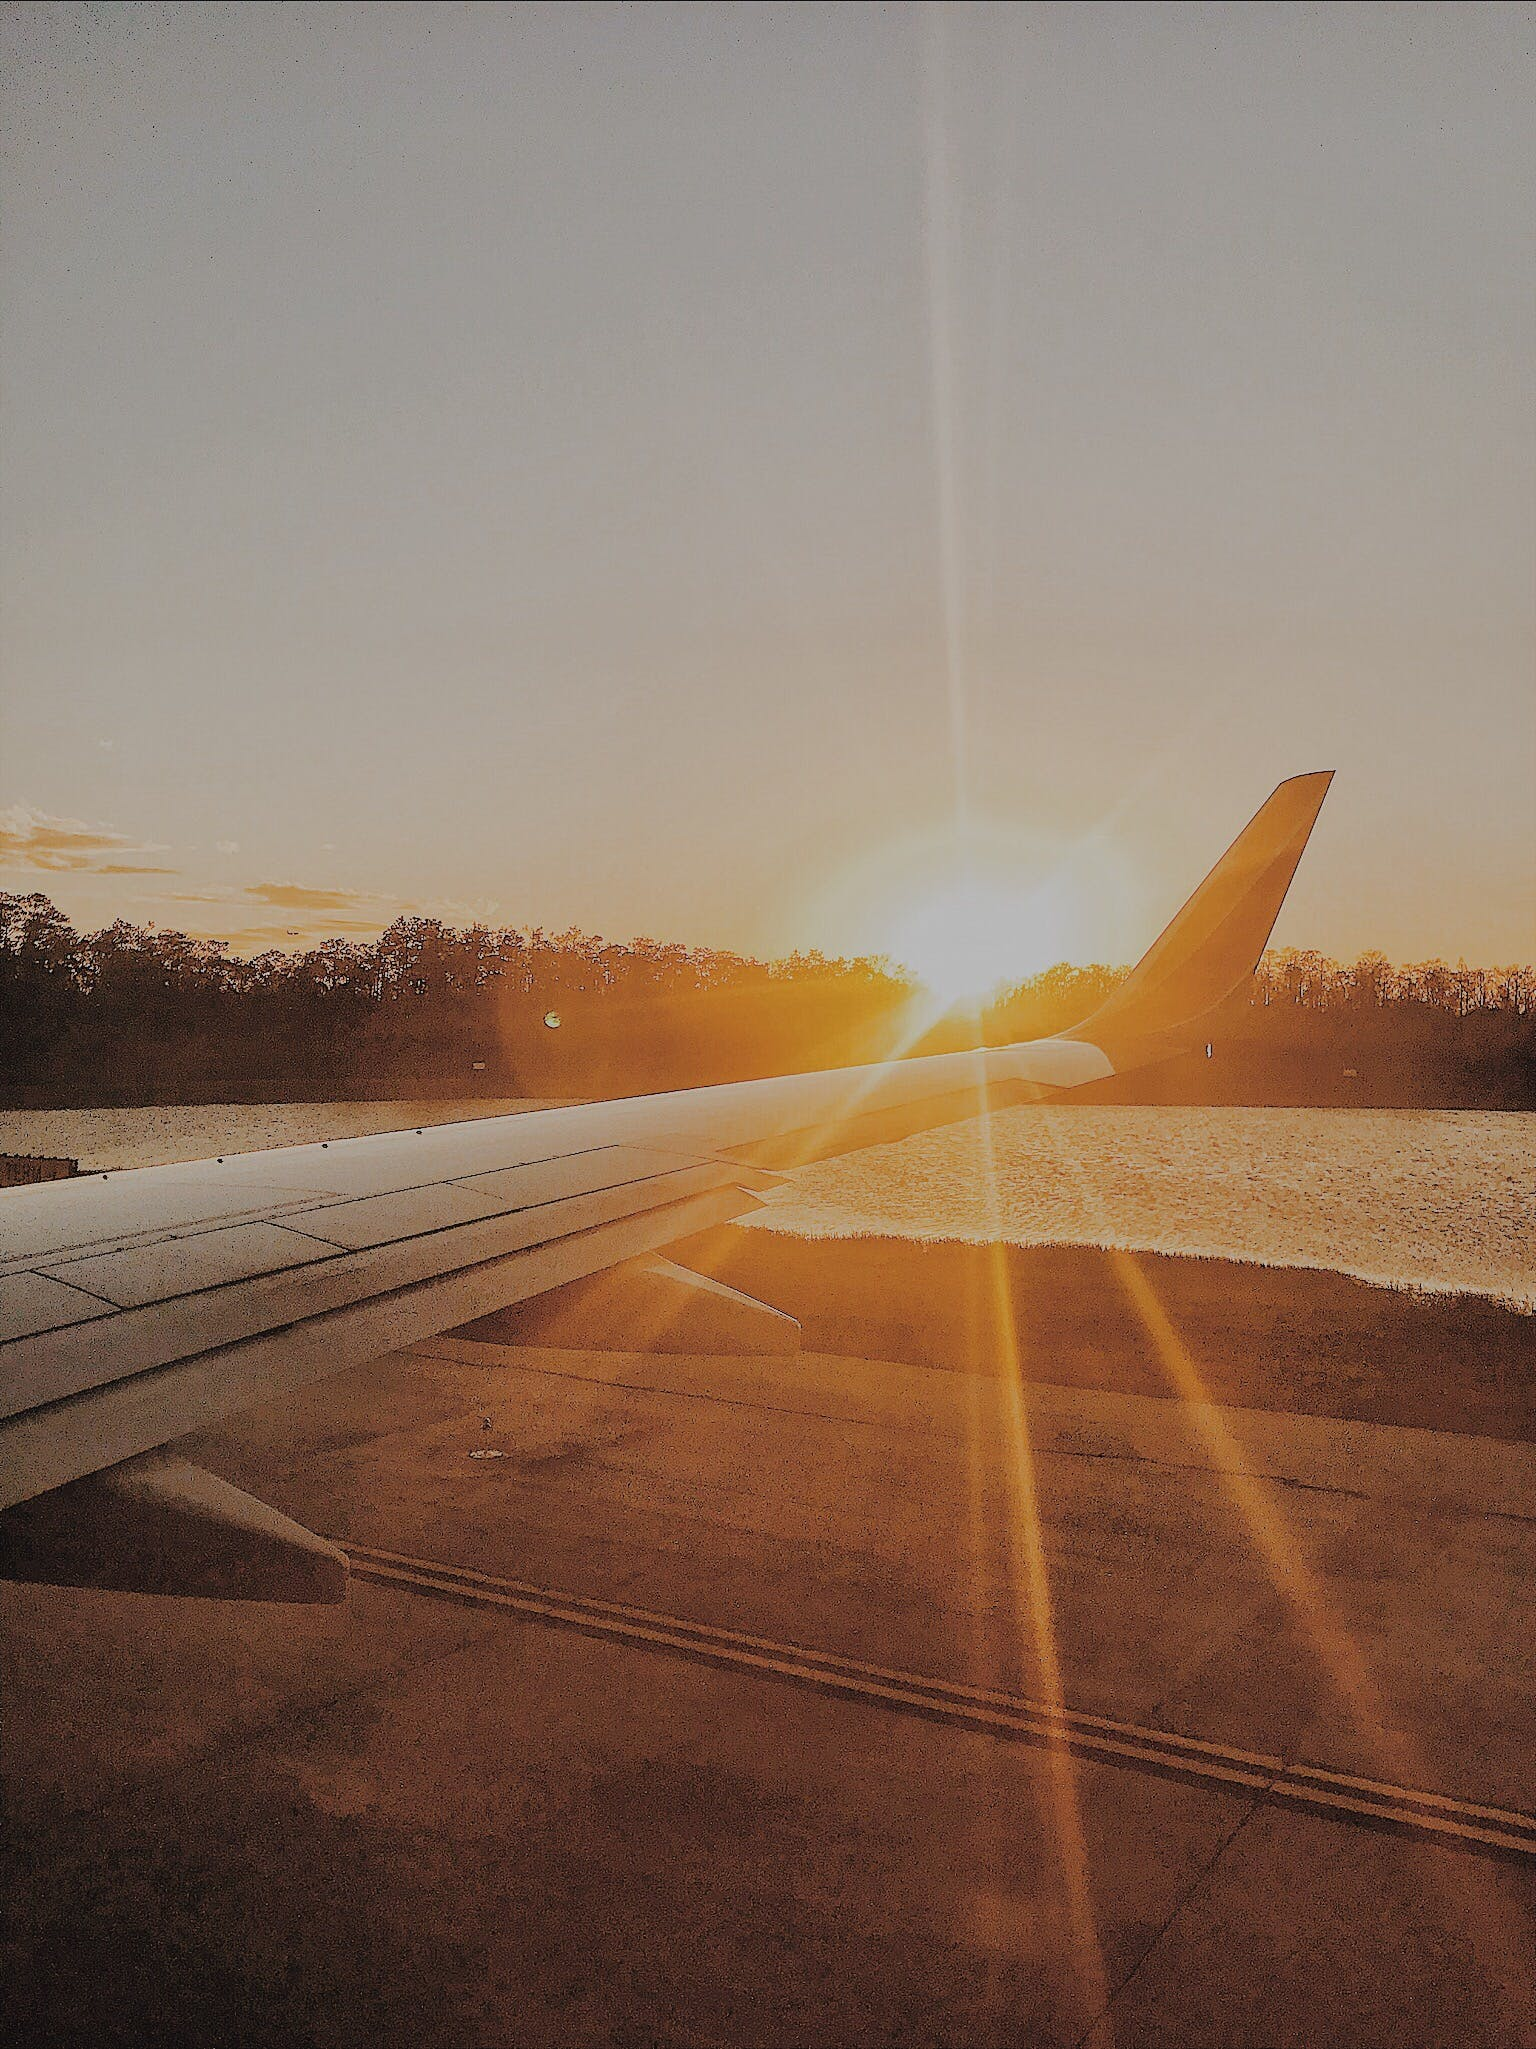 Photo of Airplane Wing during Golden Hour